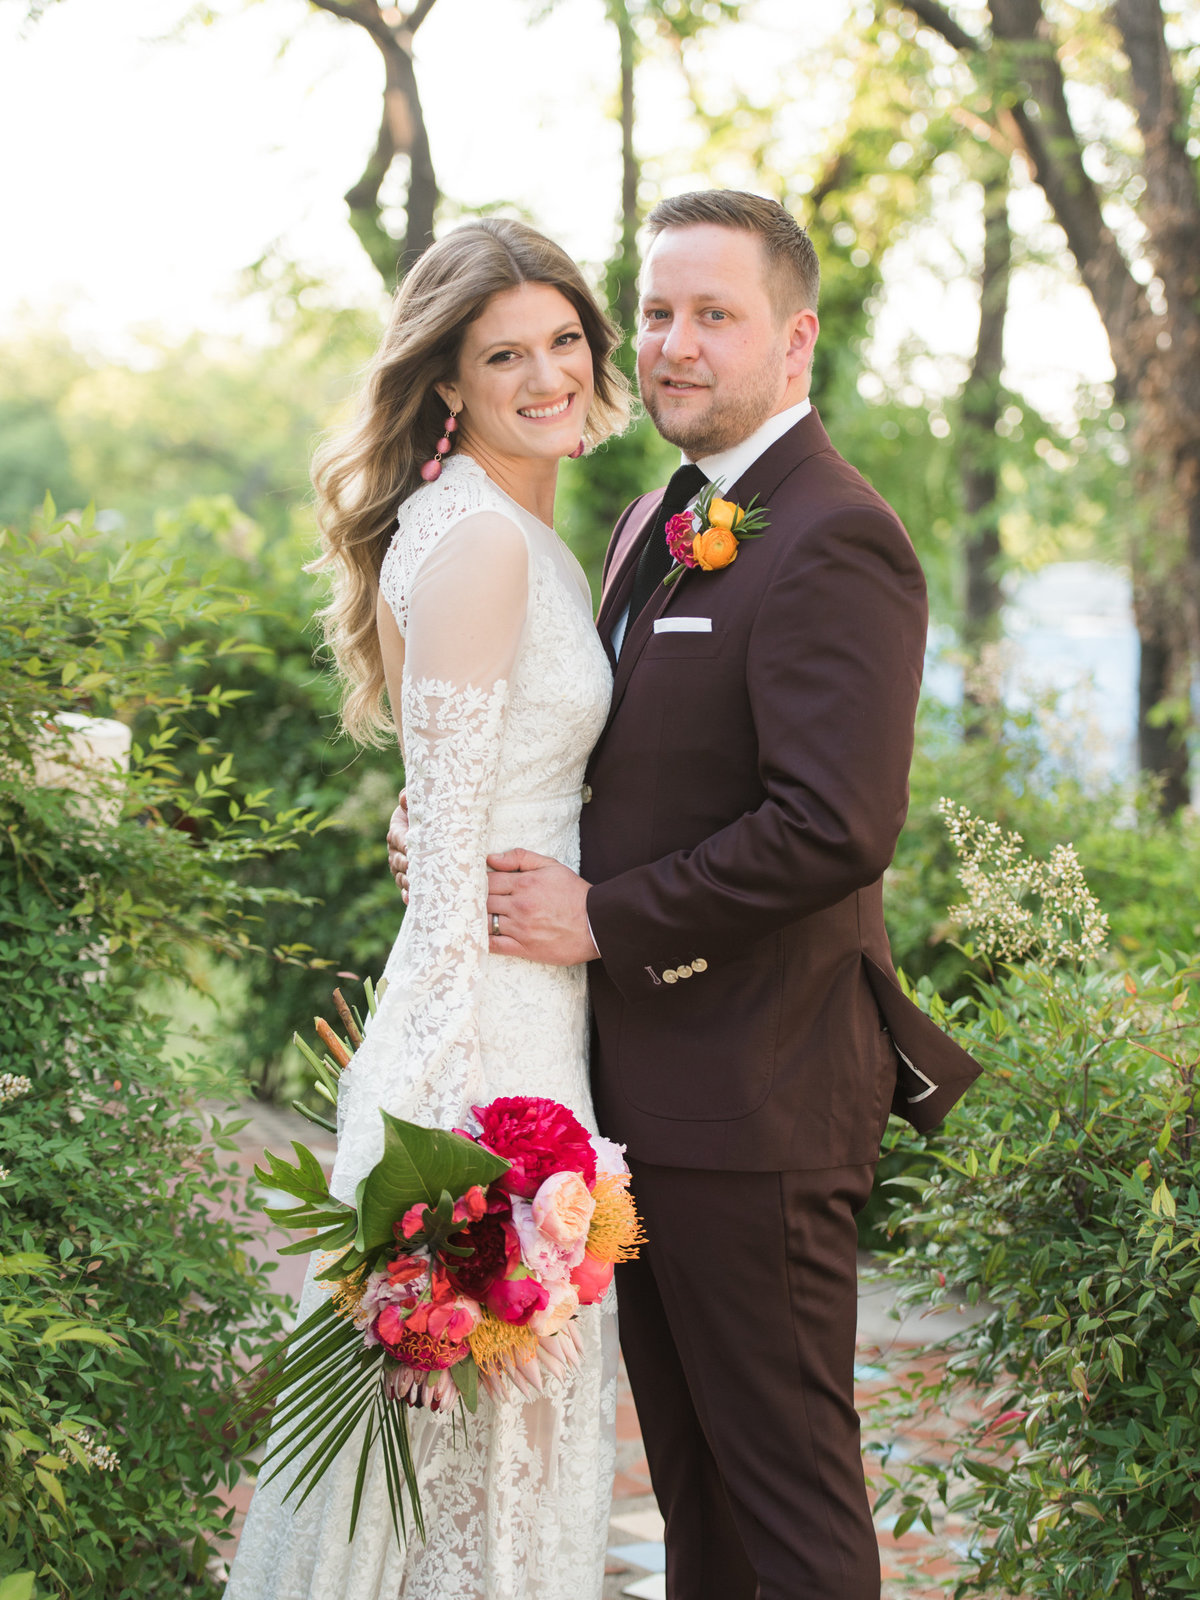 Courtney Hanson Photography - Vintage Tropical Wedding at The Belmont Hotel in Dallas-0641